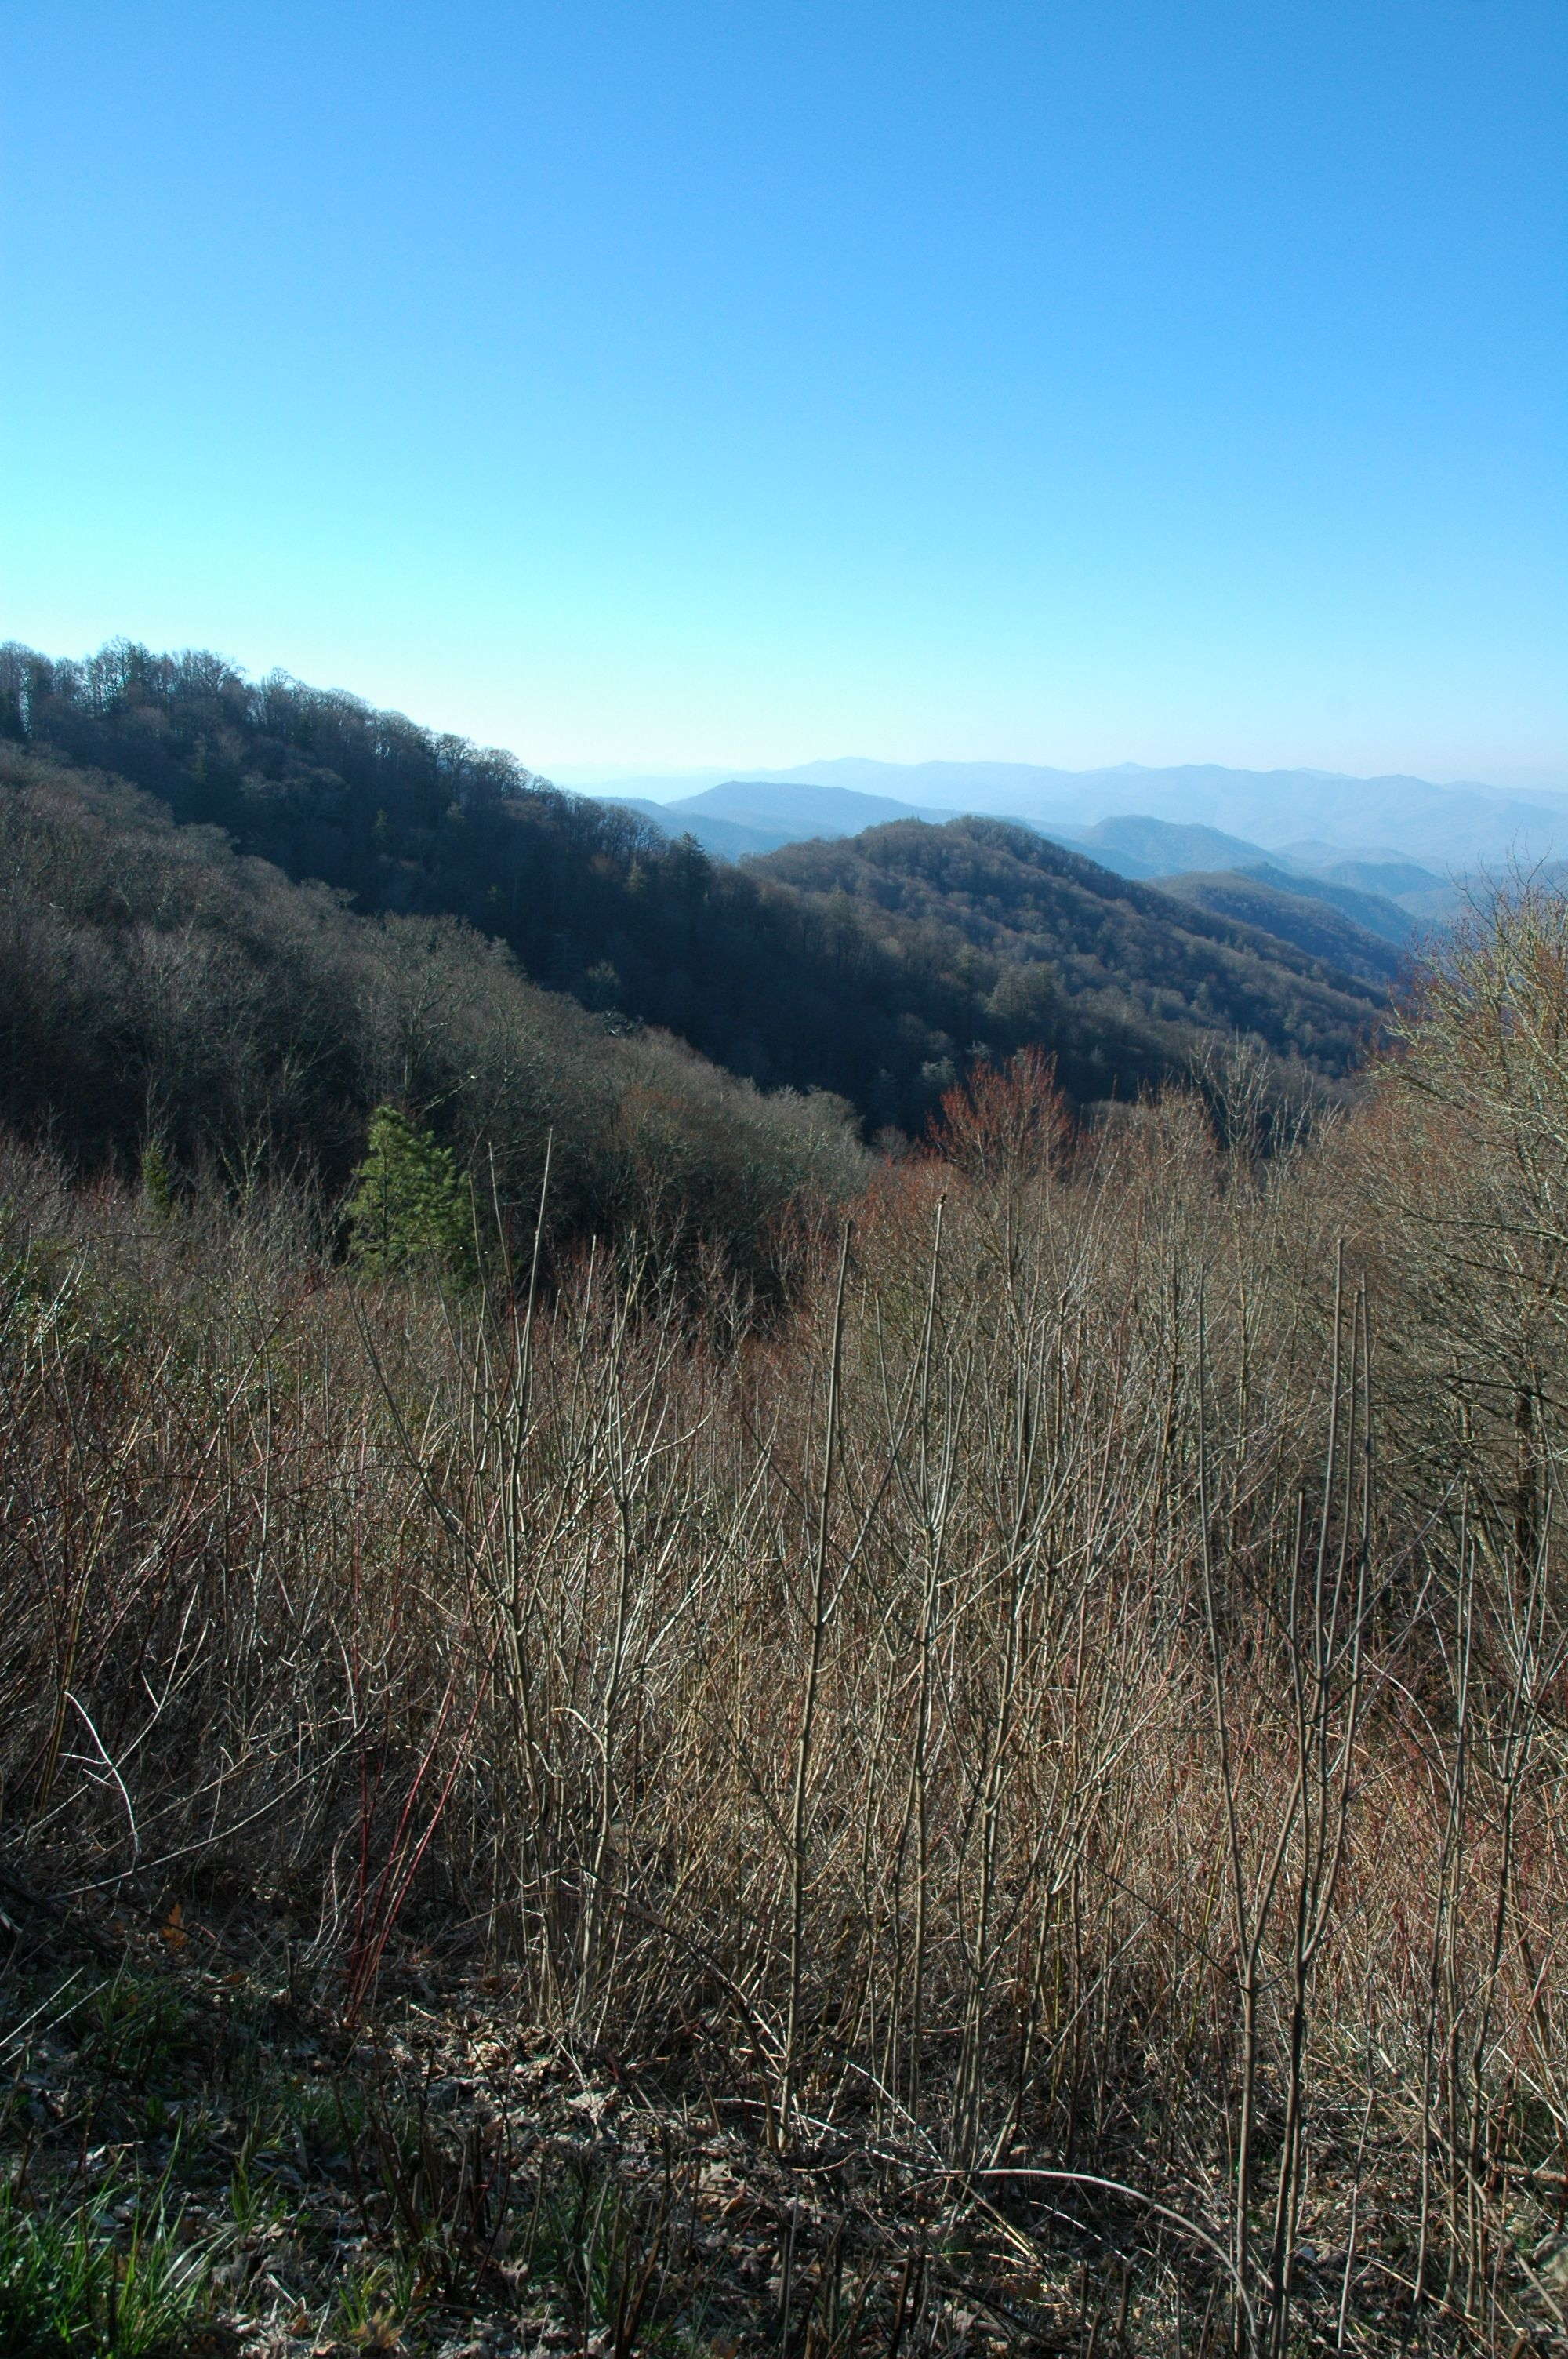 Blue skies over the Smoky Mountains